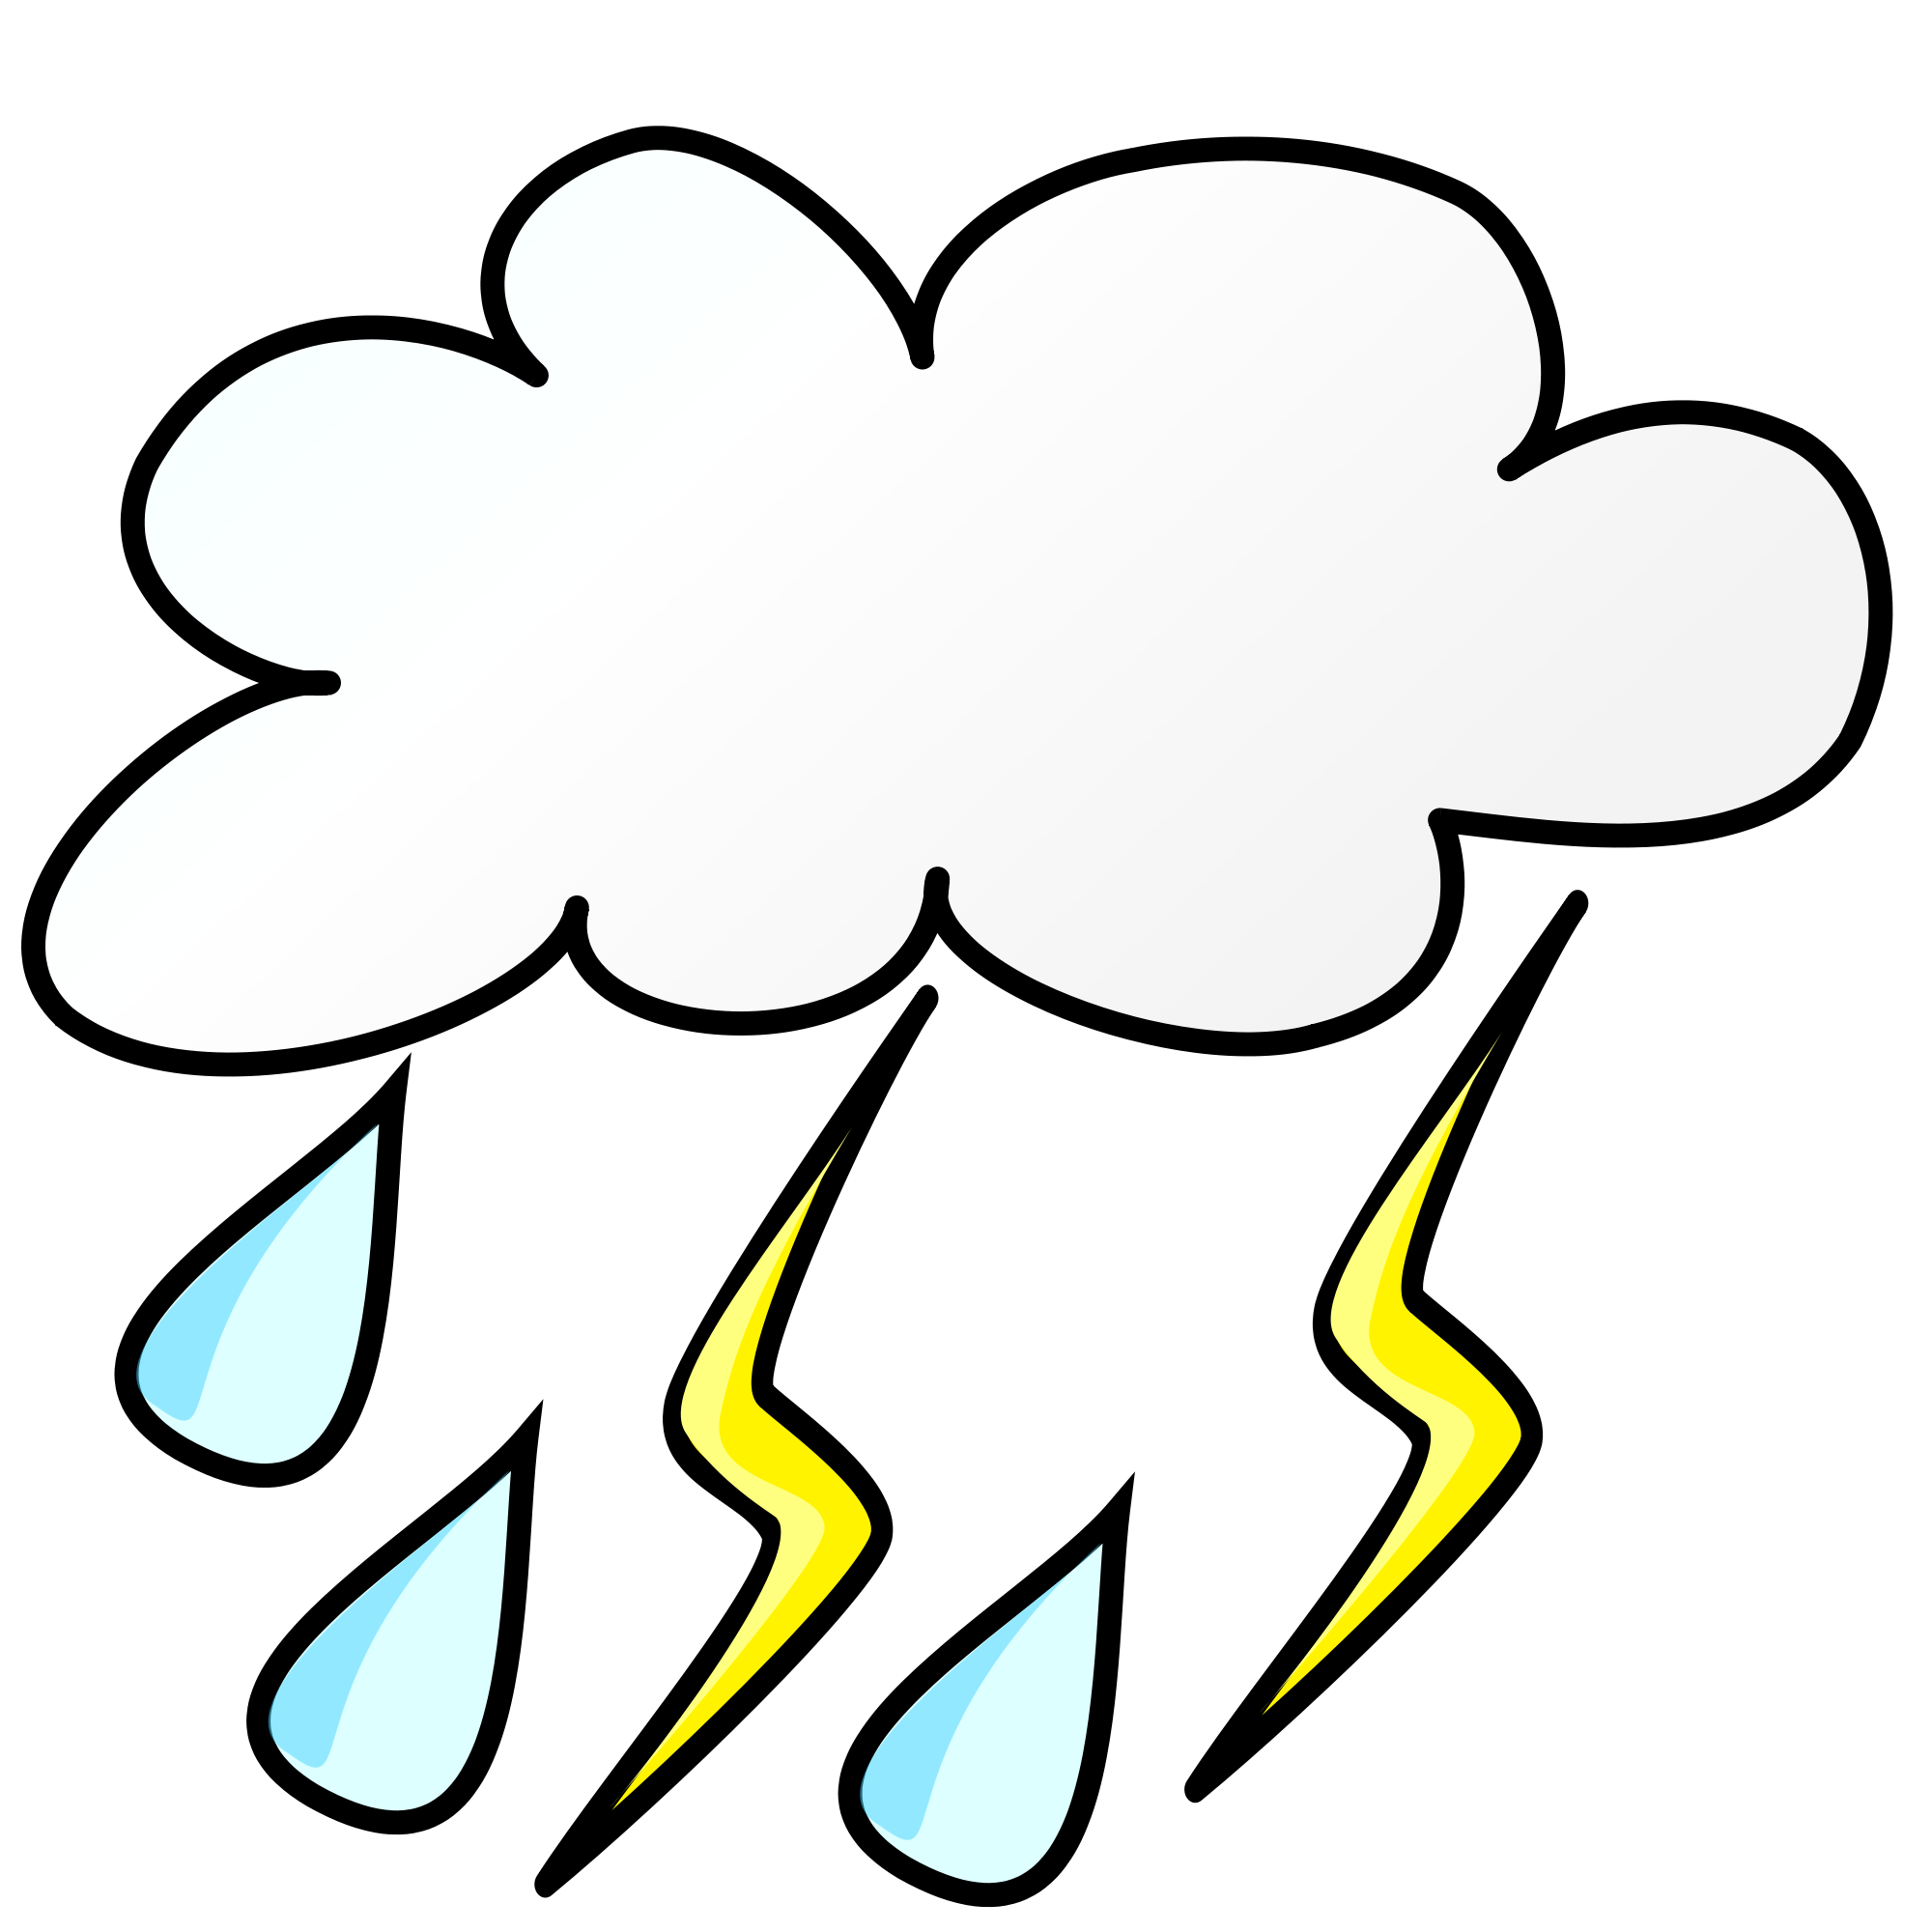 Raindrop clipart outline. Raindrops shop of library